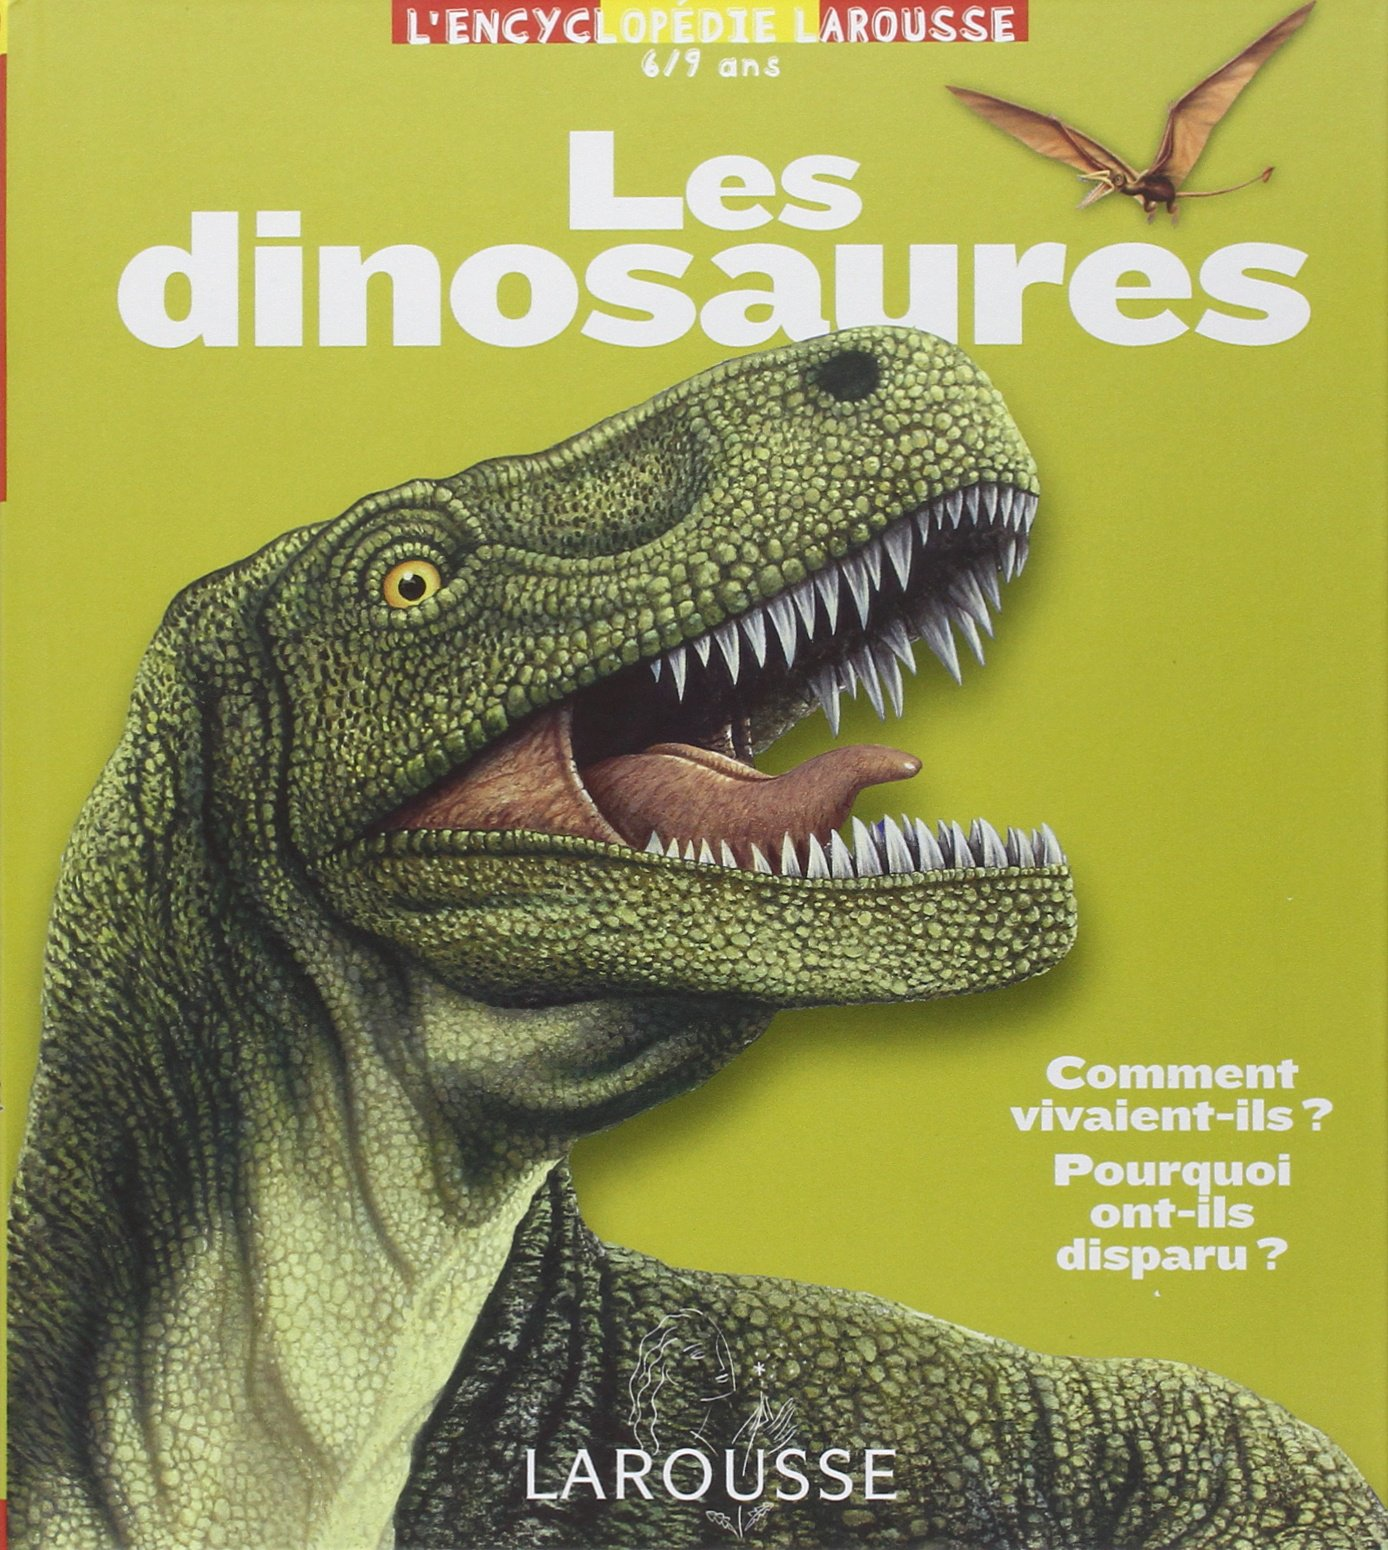 encyclopedie larousse dinosaure